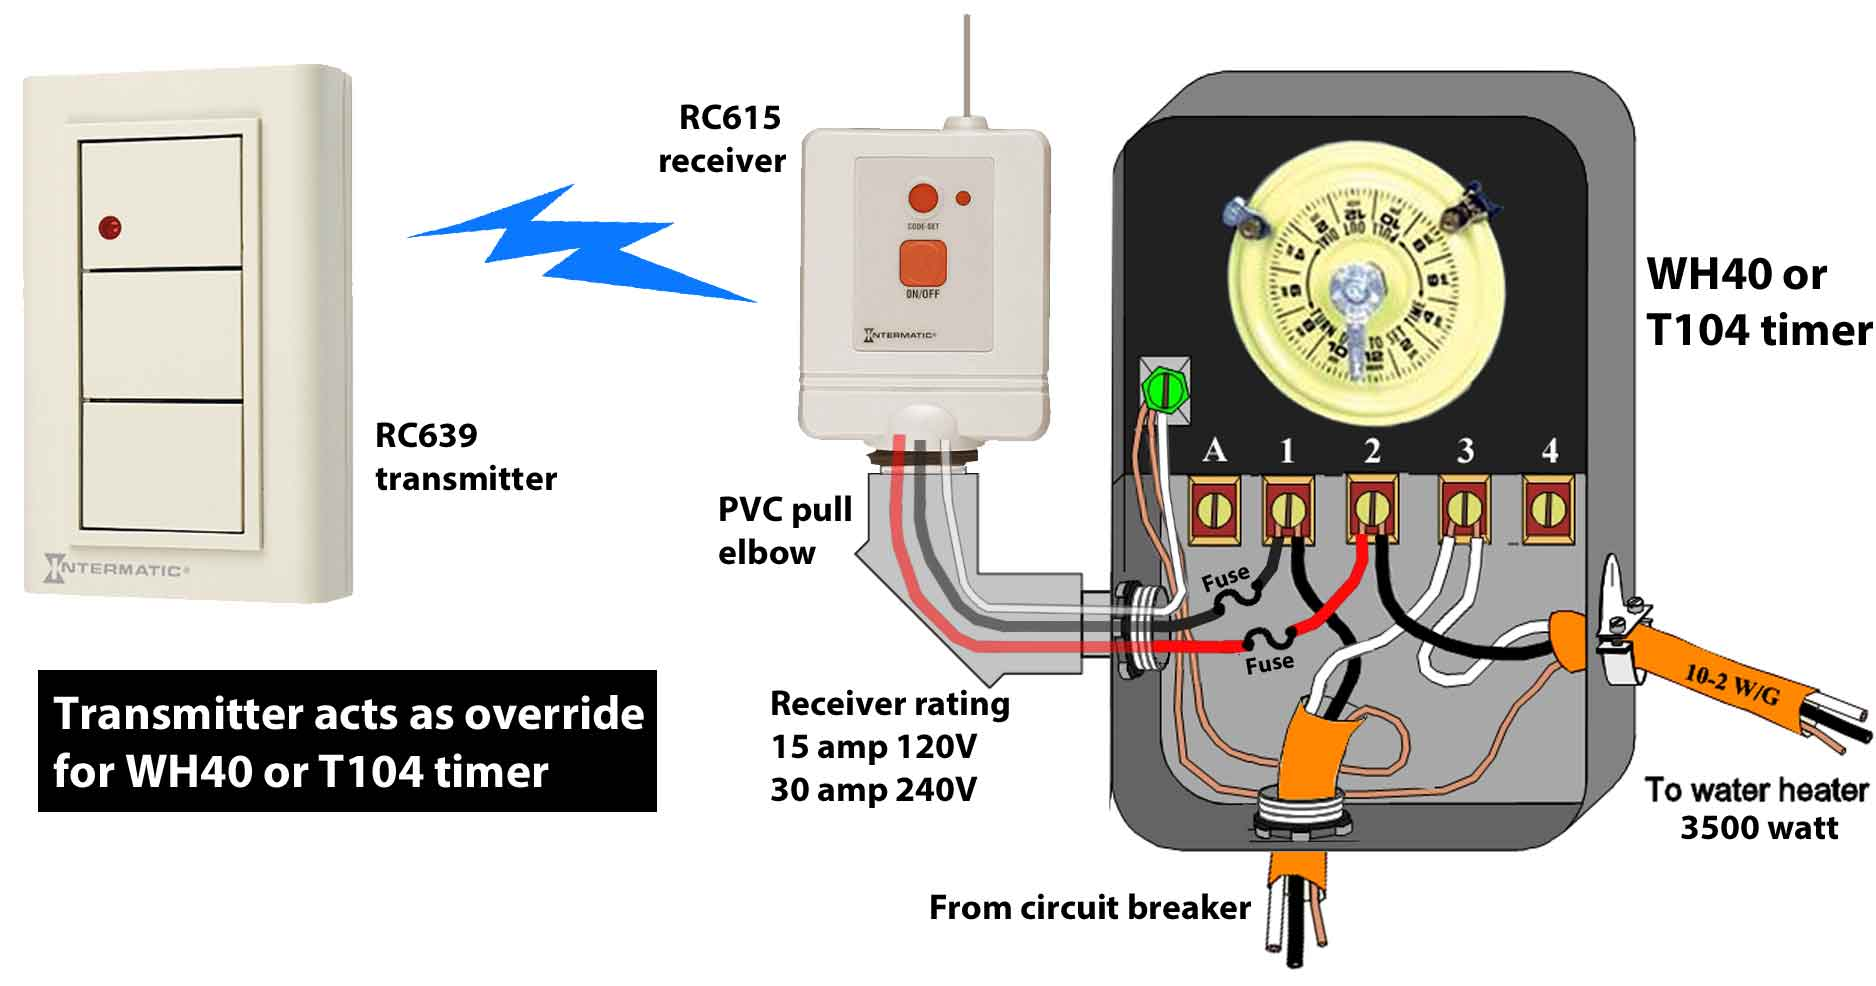 Intermatic remote RC control how to wire wh40 water heater timer time clock wiring diagram at soozxer.org